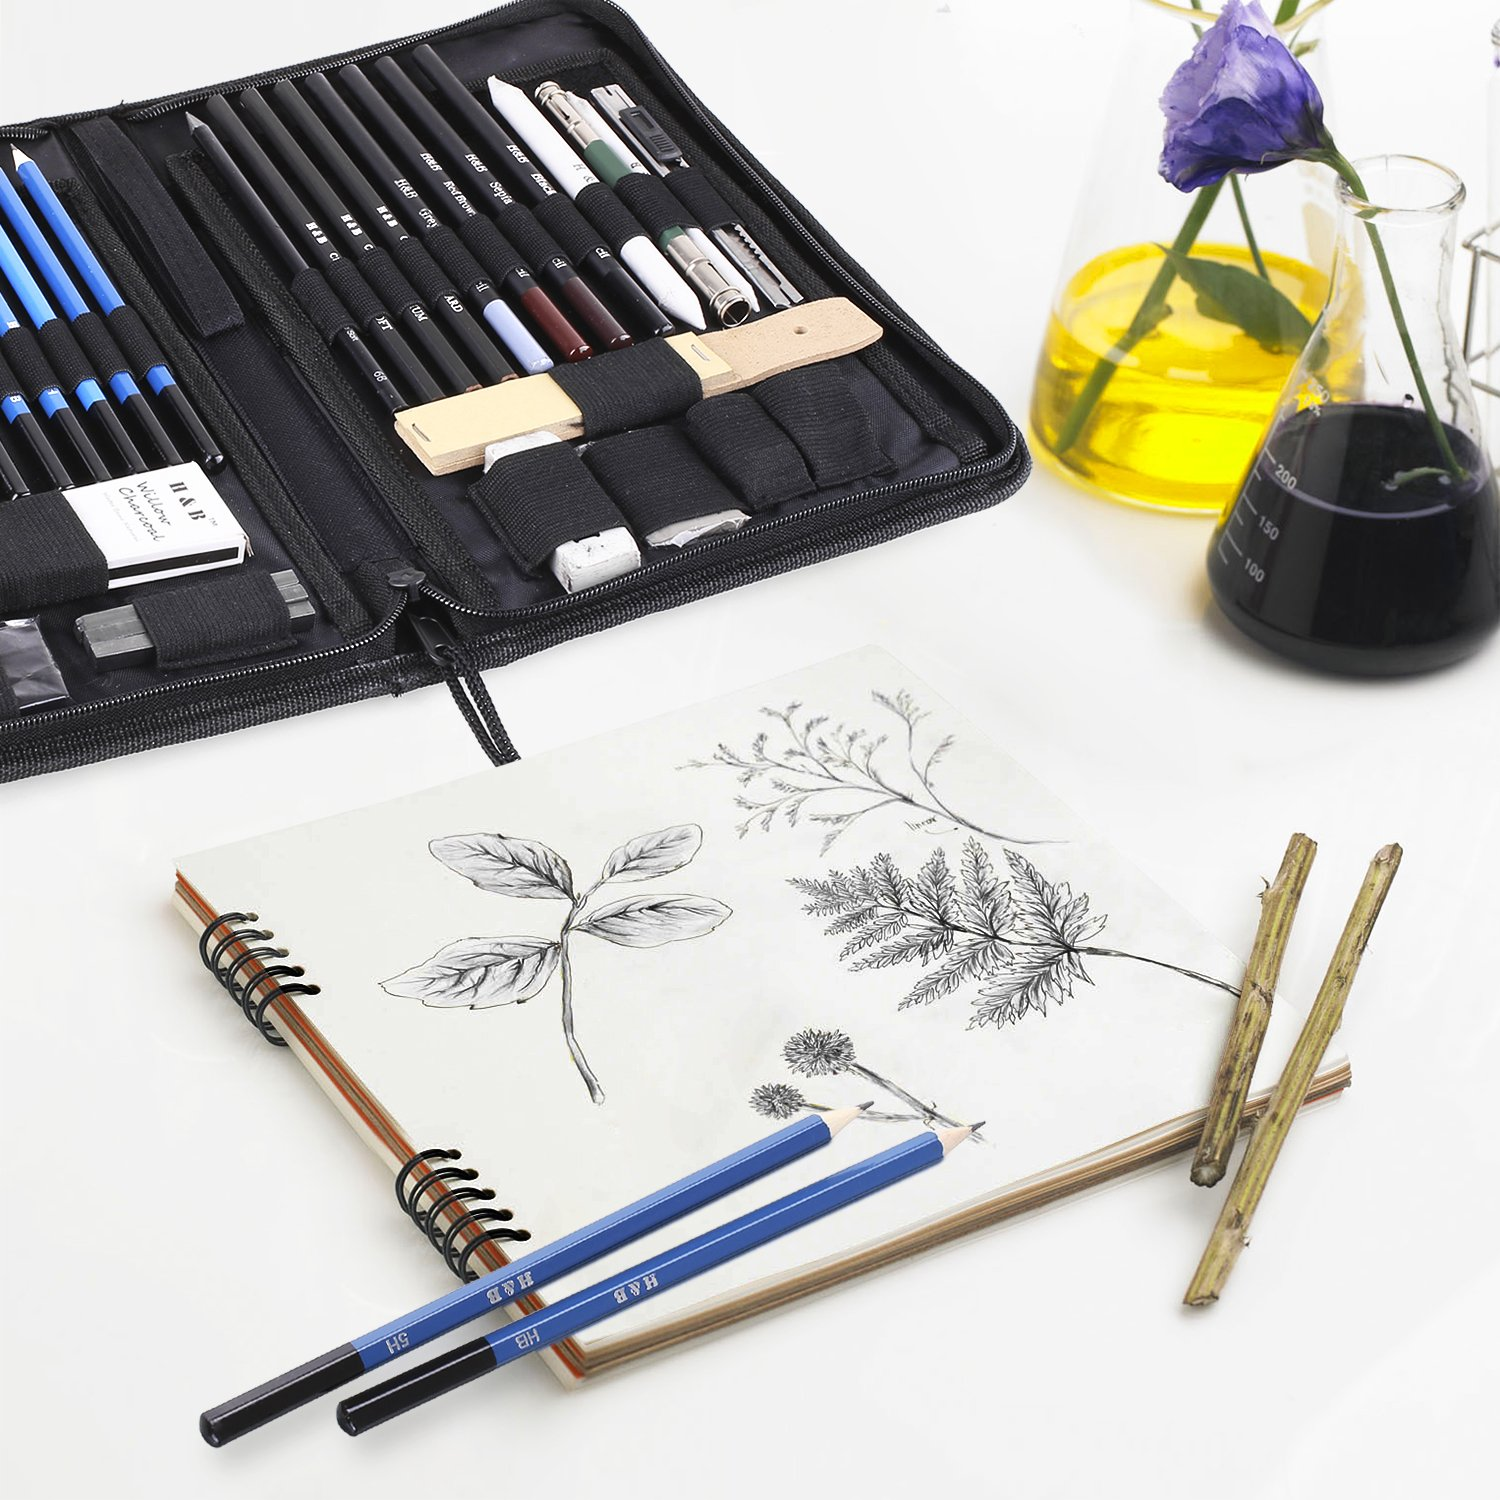 FEMOR Sketching/Drawing Pencils Set, 40 Pieces Sketching Art Kit with Sketch/Graphite Pencils, Erasers, Kit Bag, Ideal Gift for Kids and Painting Amateurs by femor